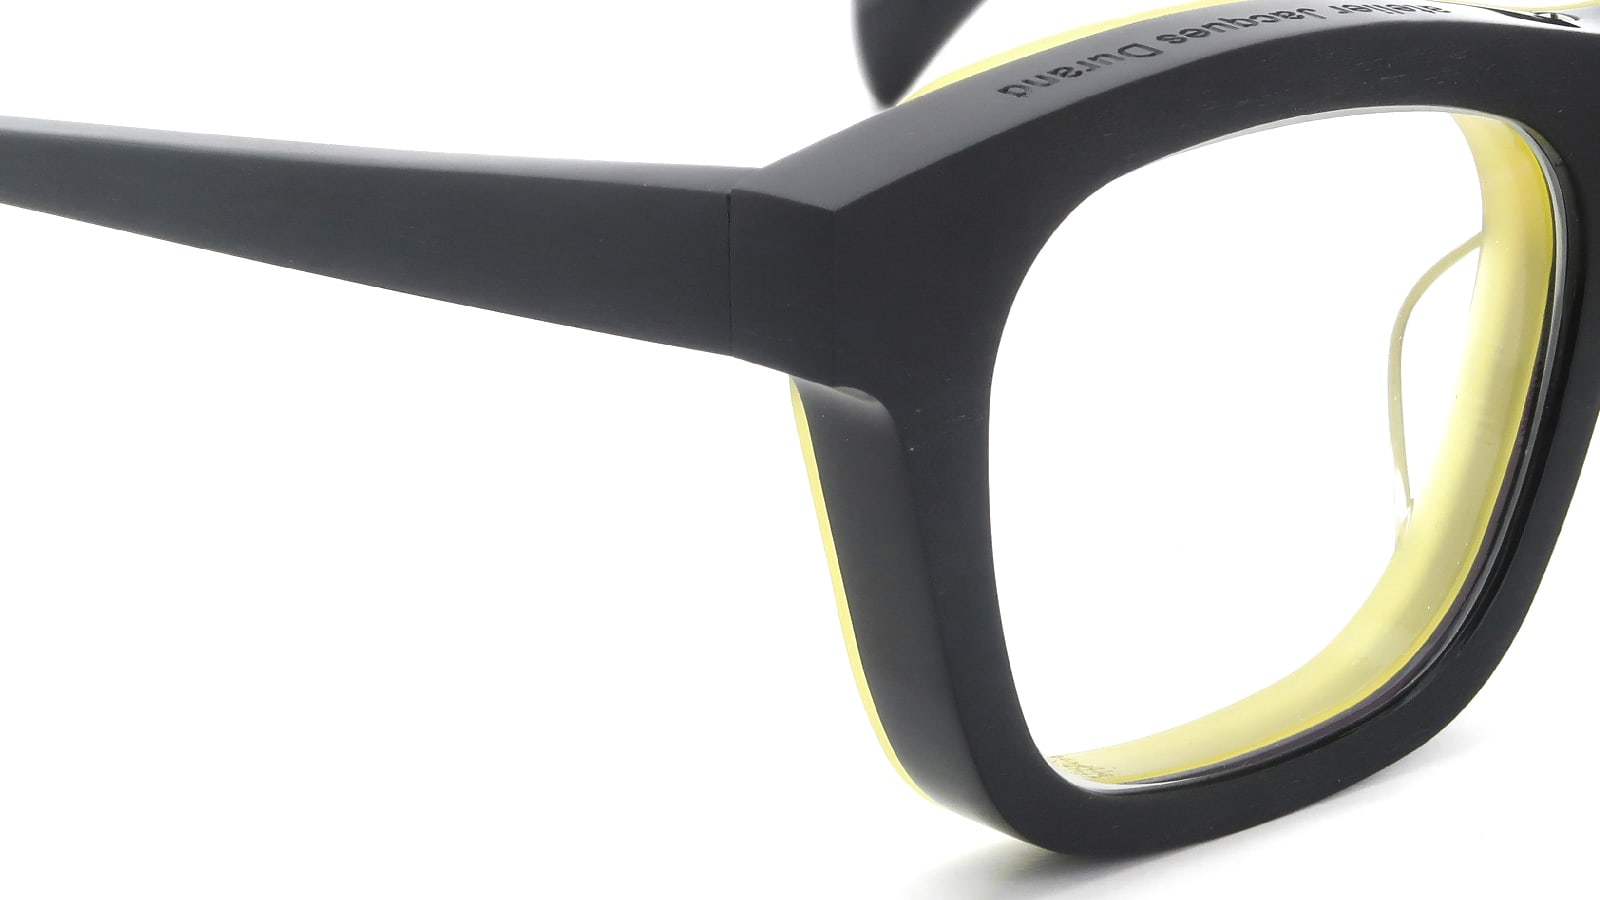 Jacques Durand Plus is + 234(INTRADOS) col.002 HM-black yellow ヒンジの詳細